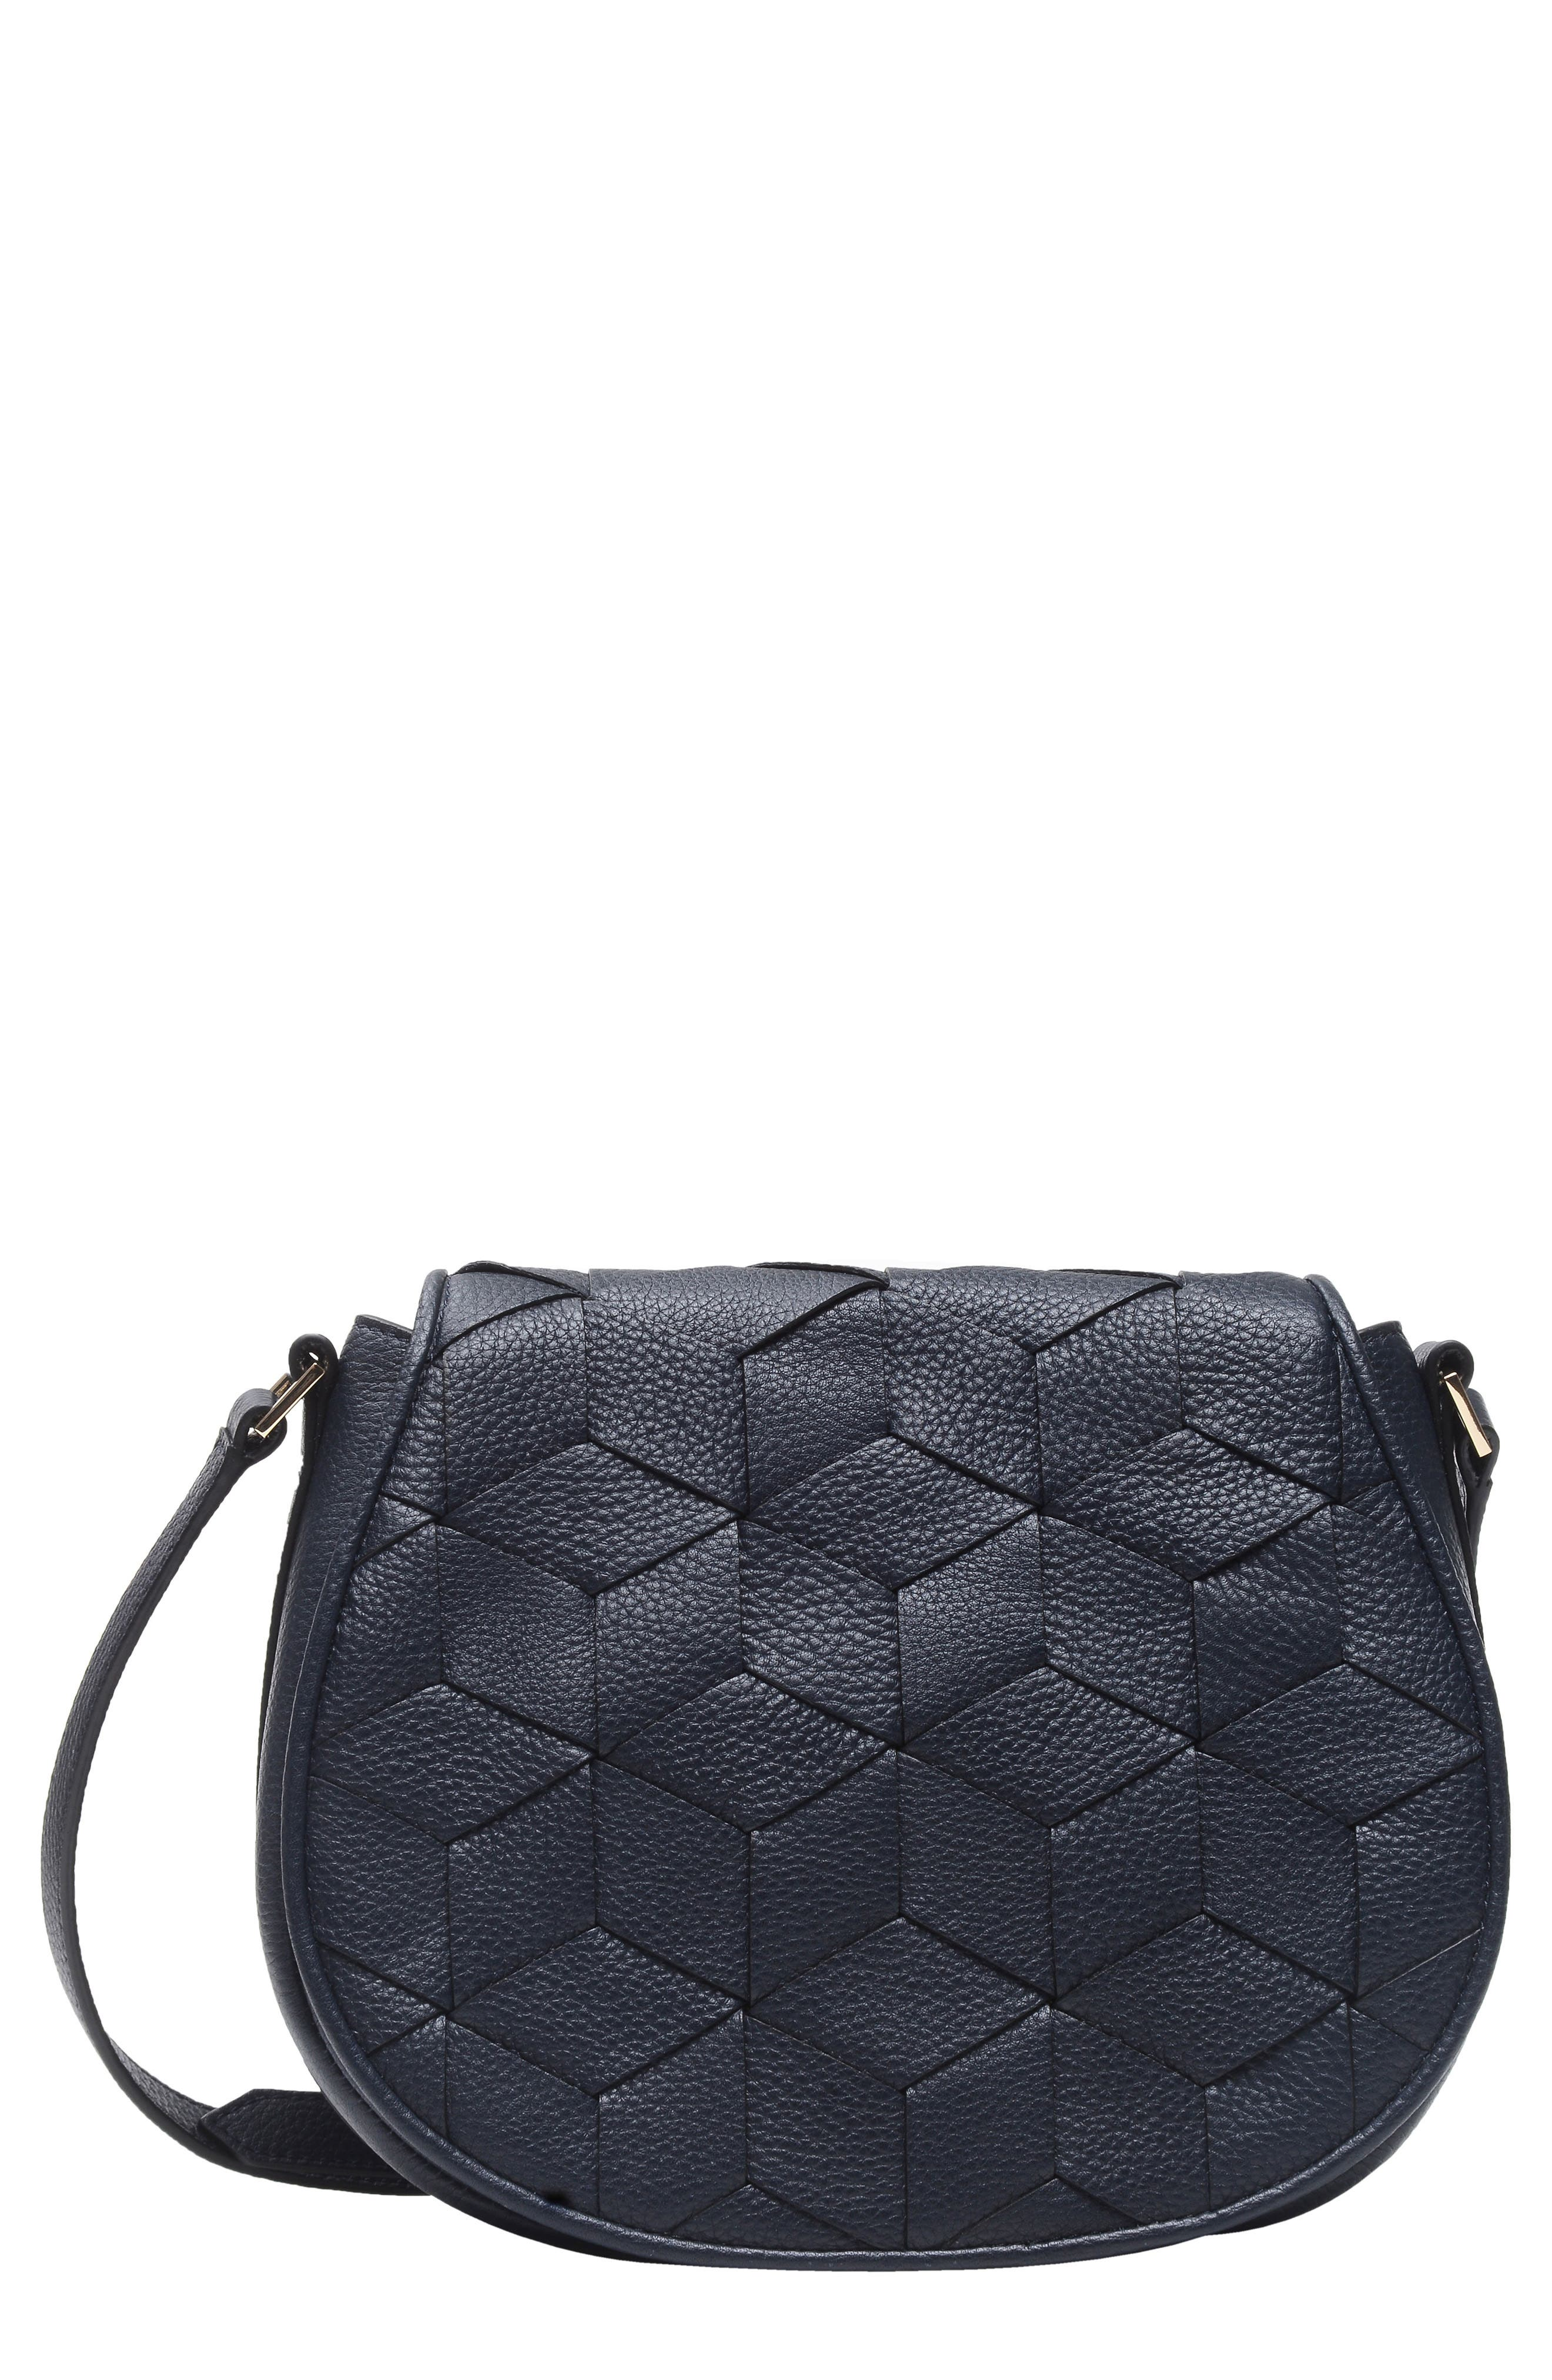 WELDEN ESCAPADE PEBBLED LEATHER SADDLE BAG - BLUE